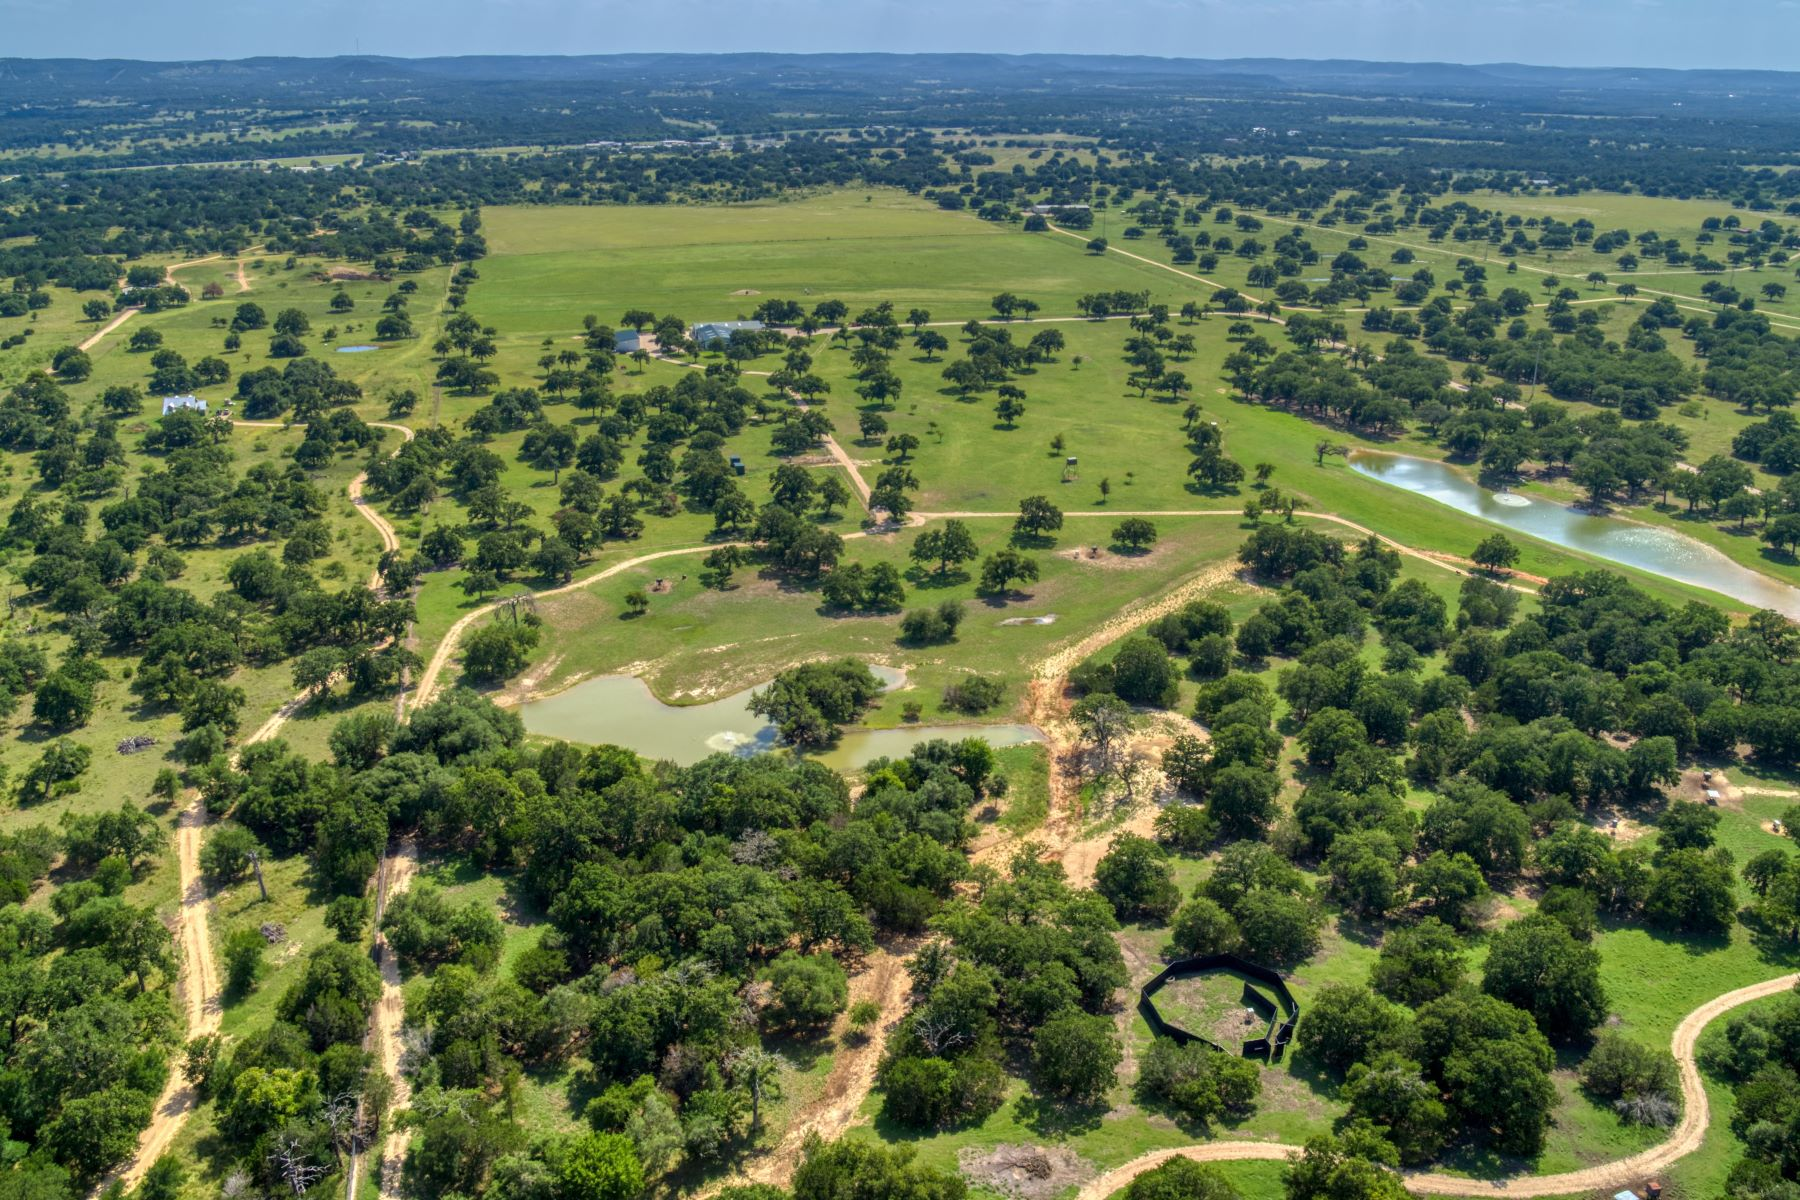 Farm / Ranch / Plantation for Sale at Sportsman's Paradise Ranch in Downtown Bandera 1567 Farm to Market Road 3240 Bandera, Texas 78003 United States